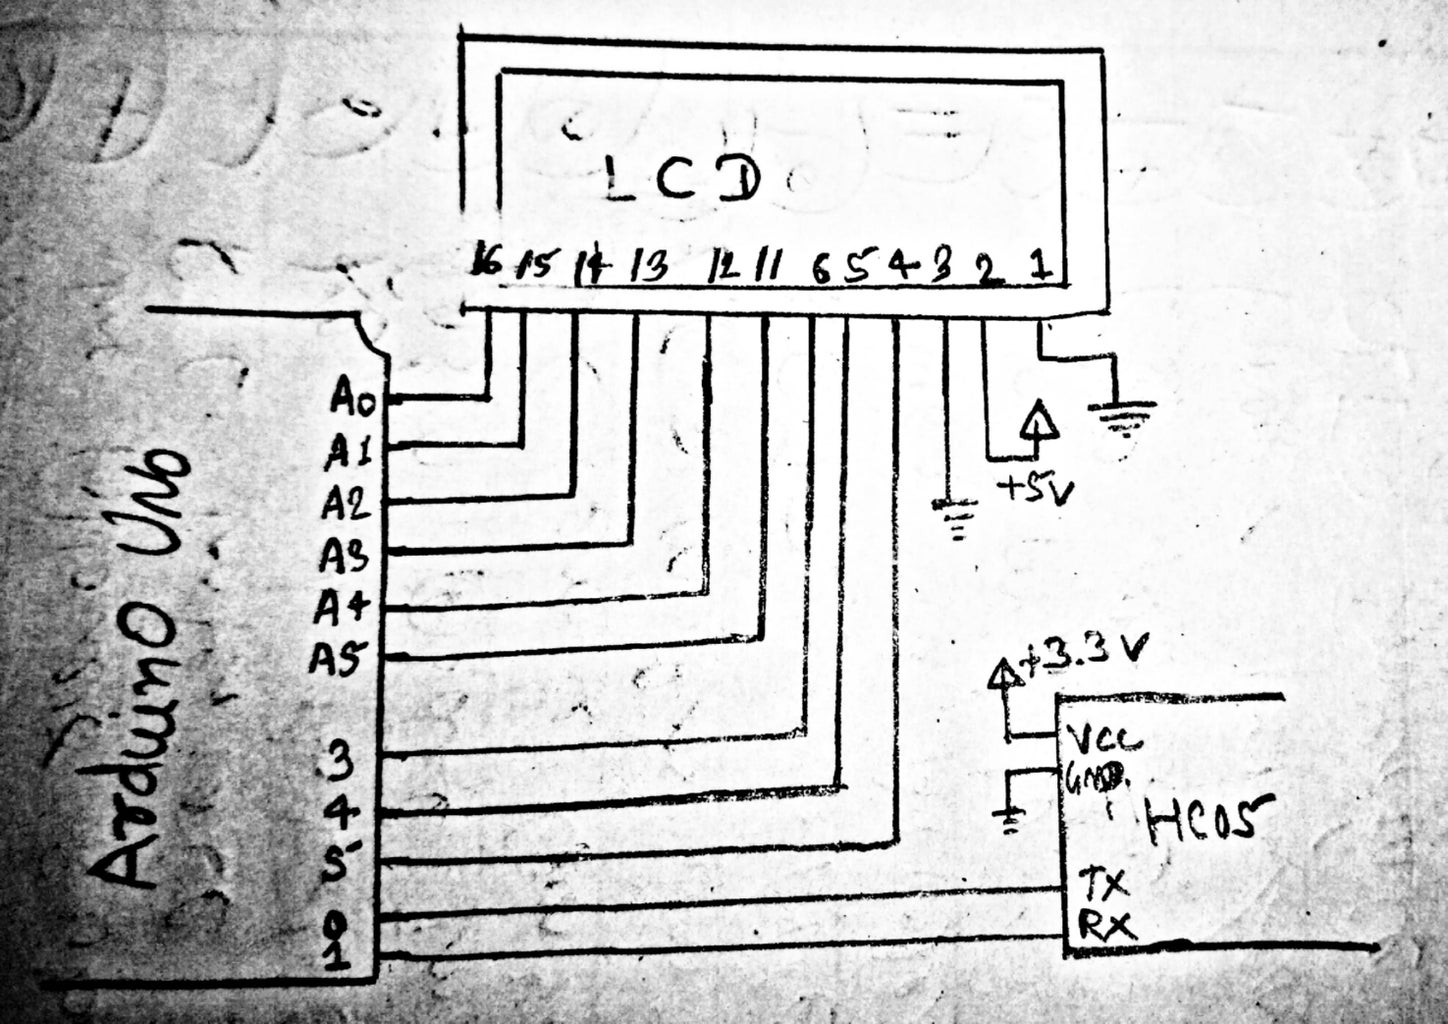 Over All Circuit Diagram